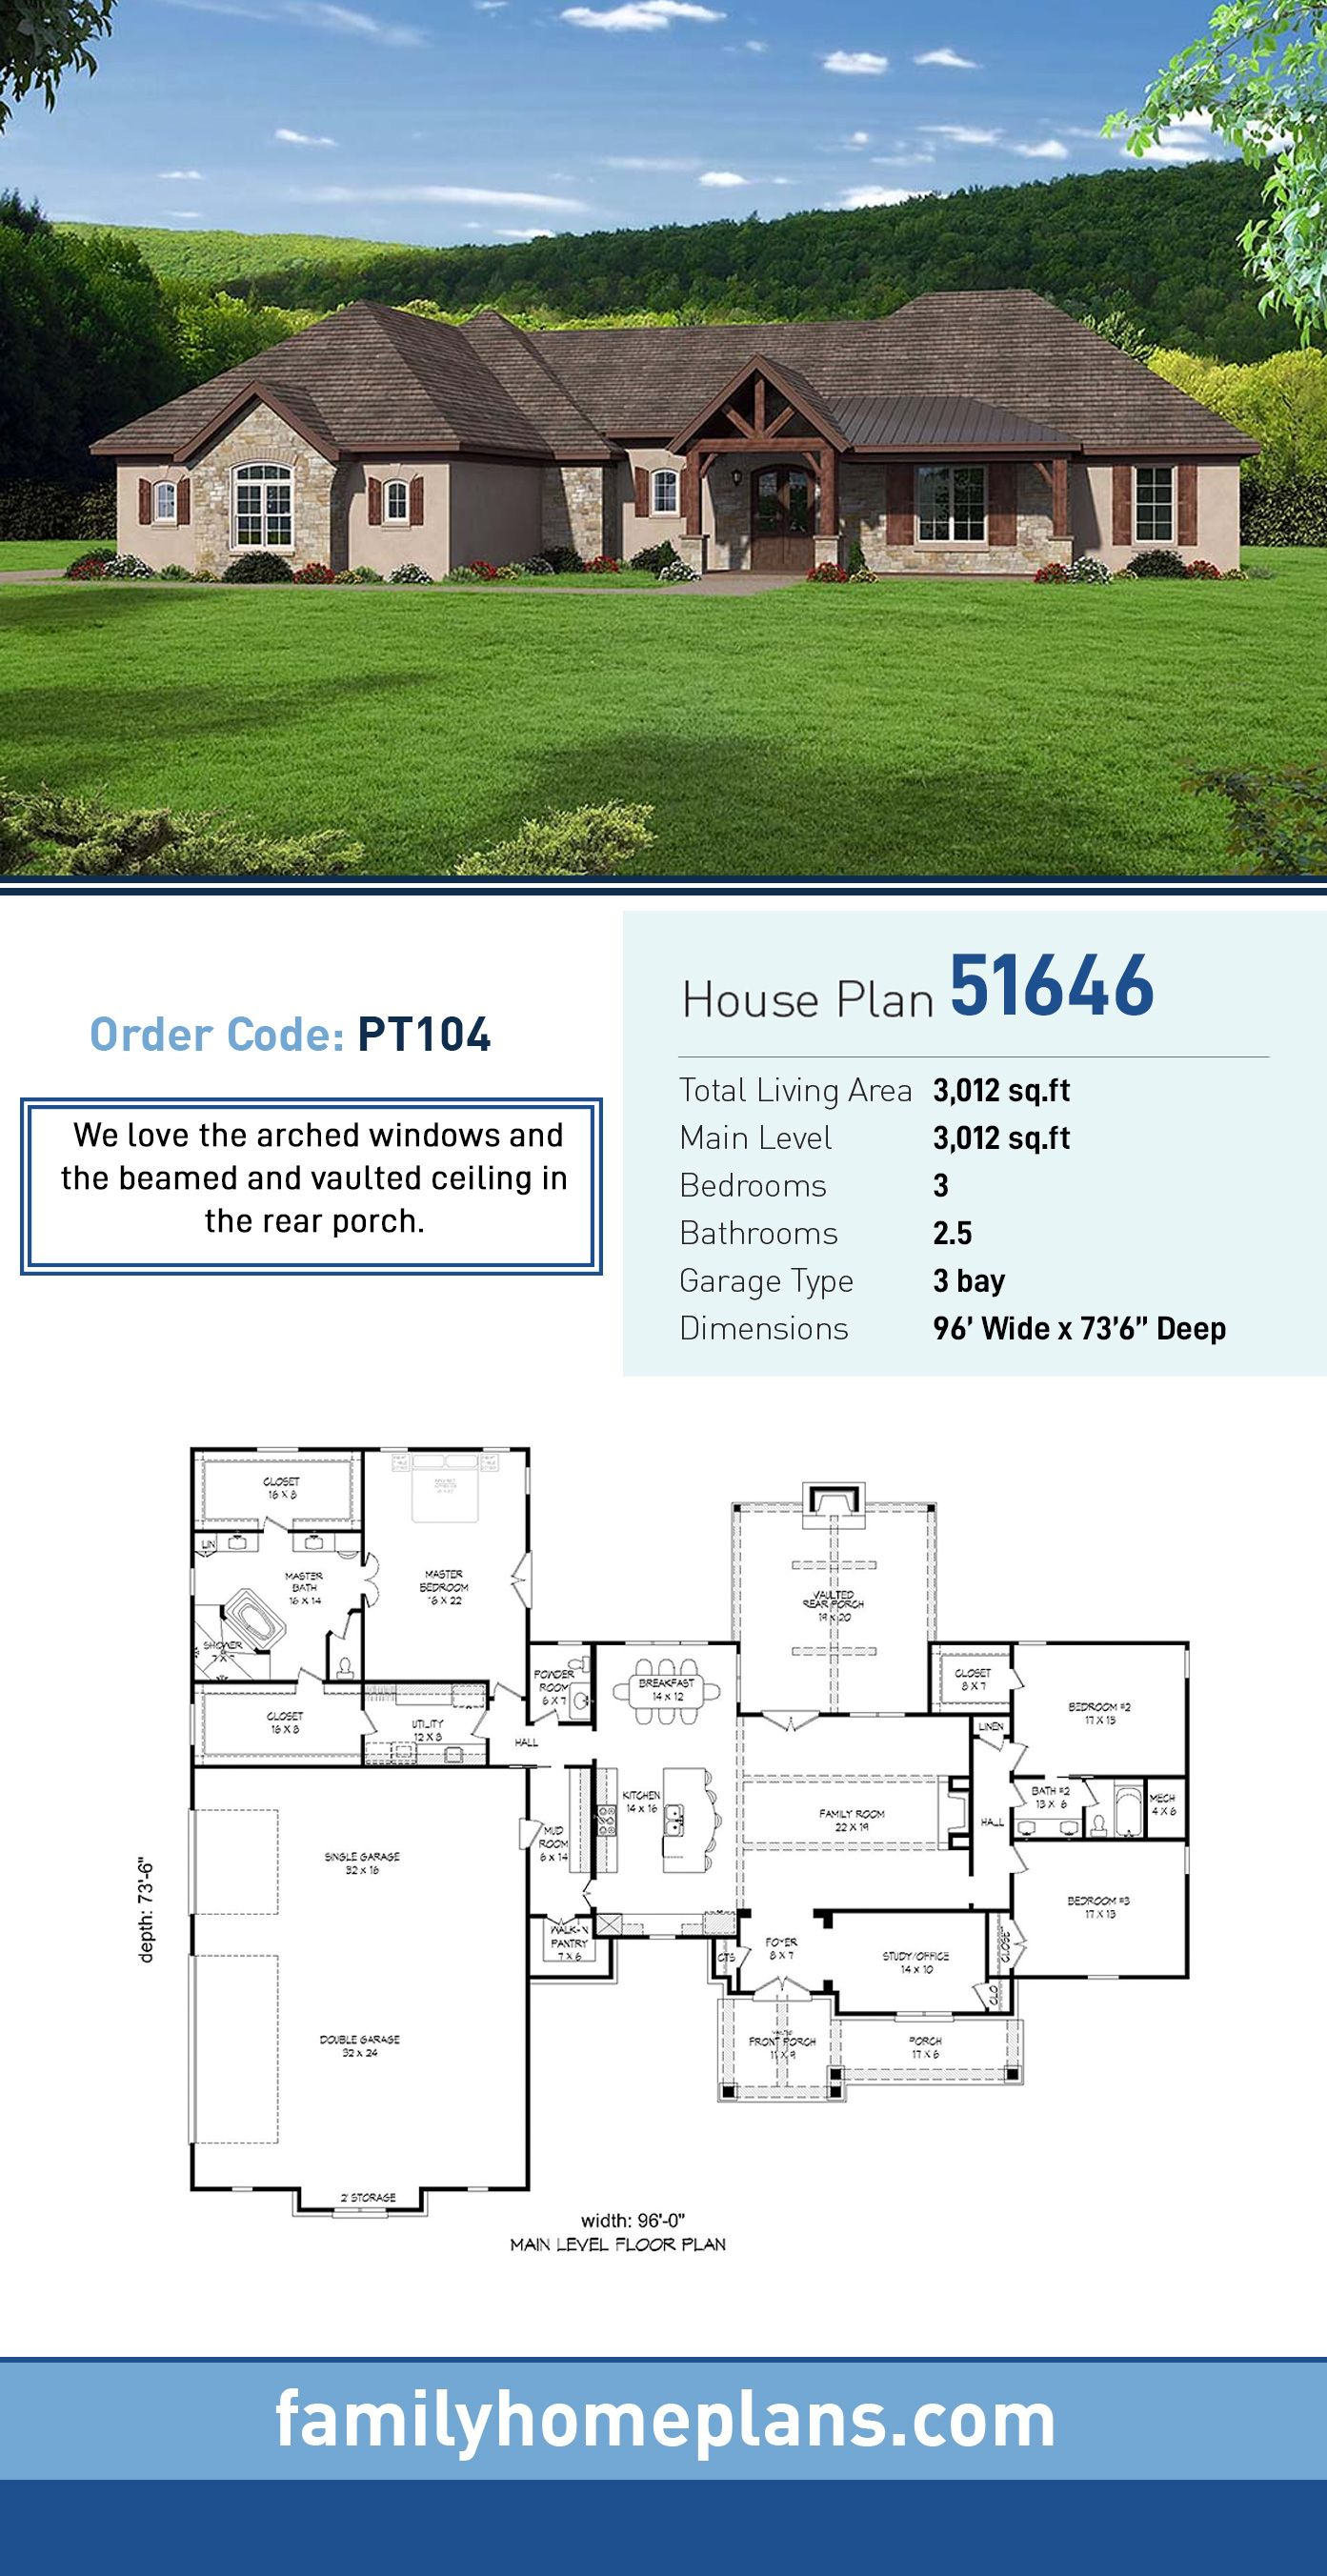 Ranch Style House Plan 51646 With 3 Bed 3 Bath 3 Car Garage House Plans Ranch Style Homes Ranch Style House Plans